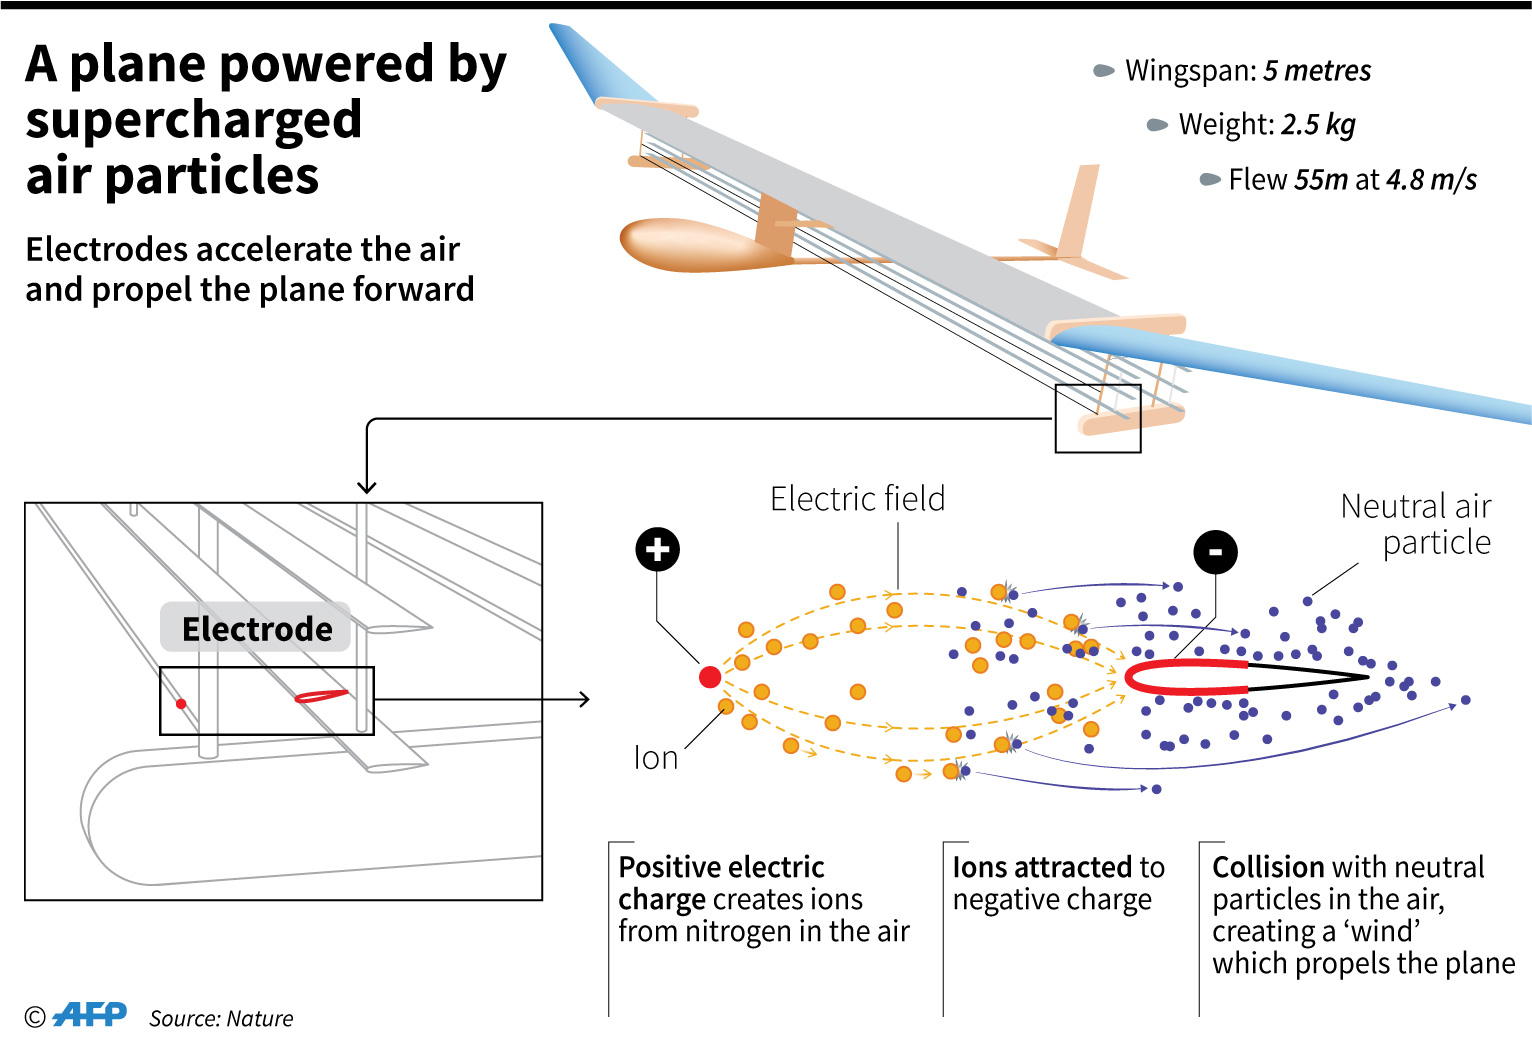 Silent Plane With No Moving Parts Makes Historic Flight Airplane Worlds First Solid State Aeroplane Prototype That Uses Supercharged Air Molecules To Fly